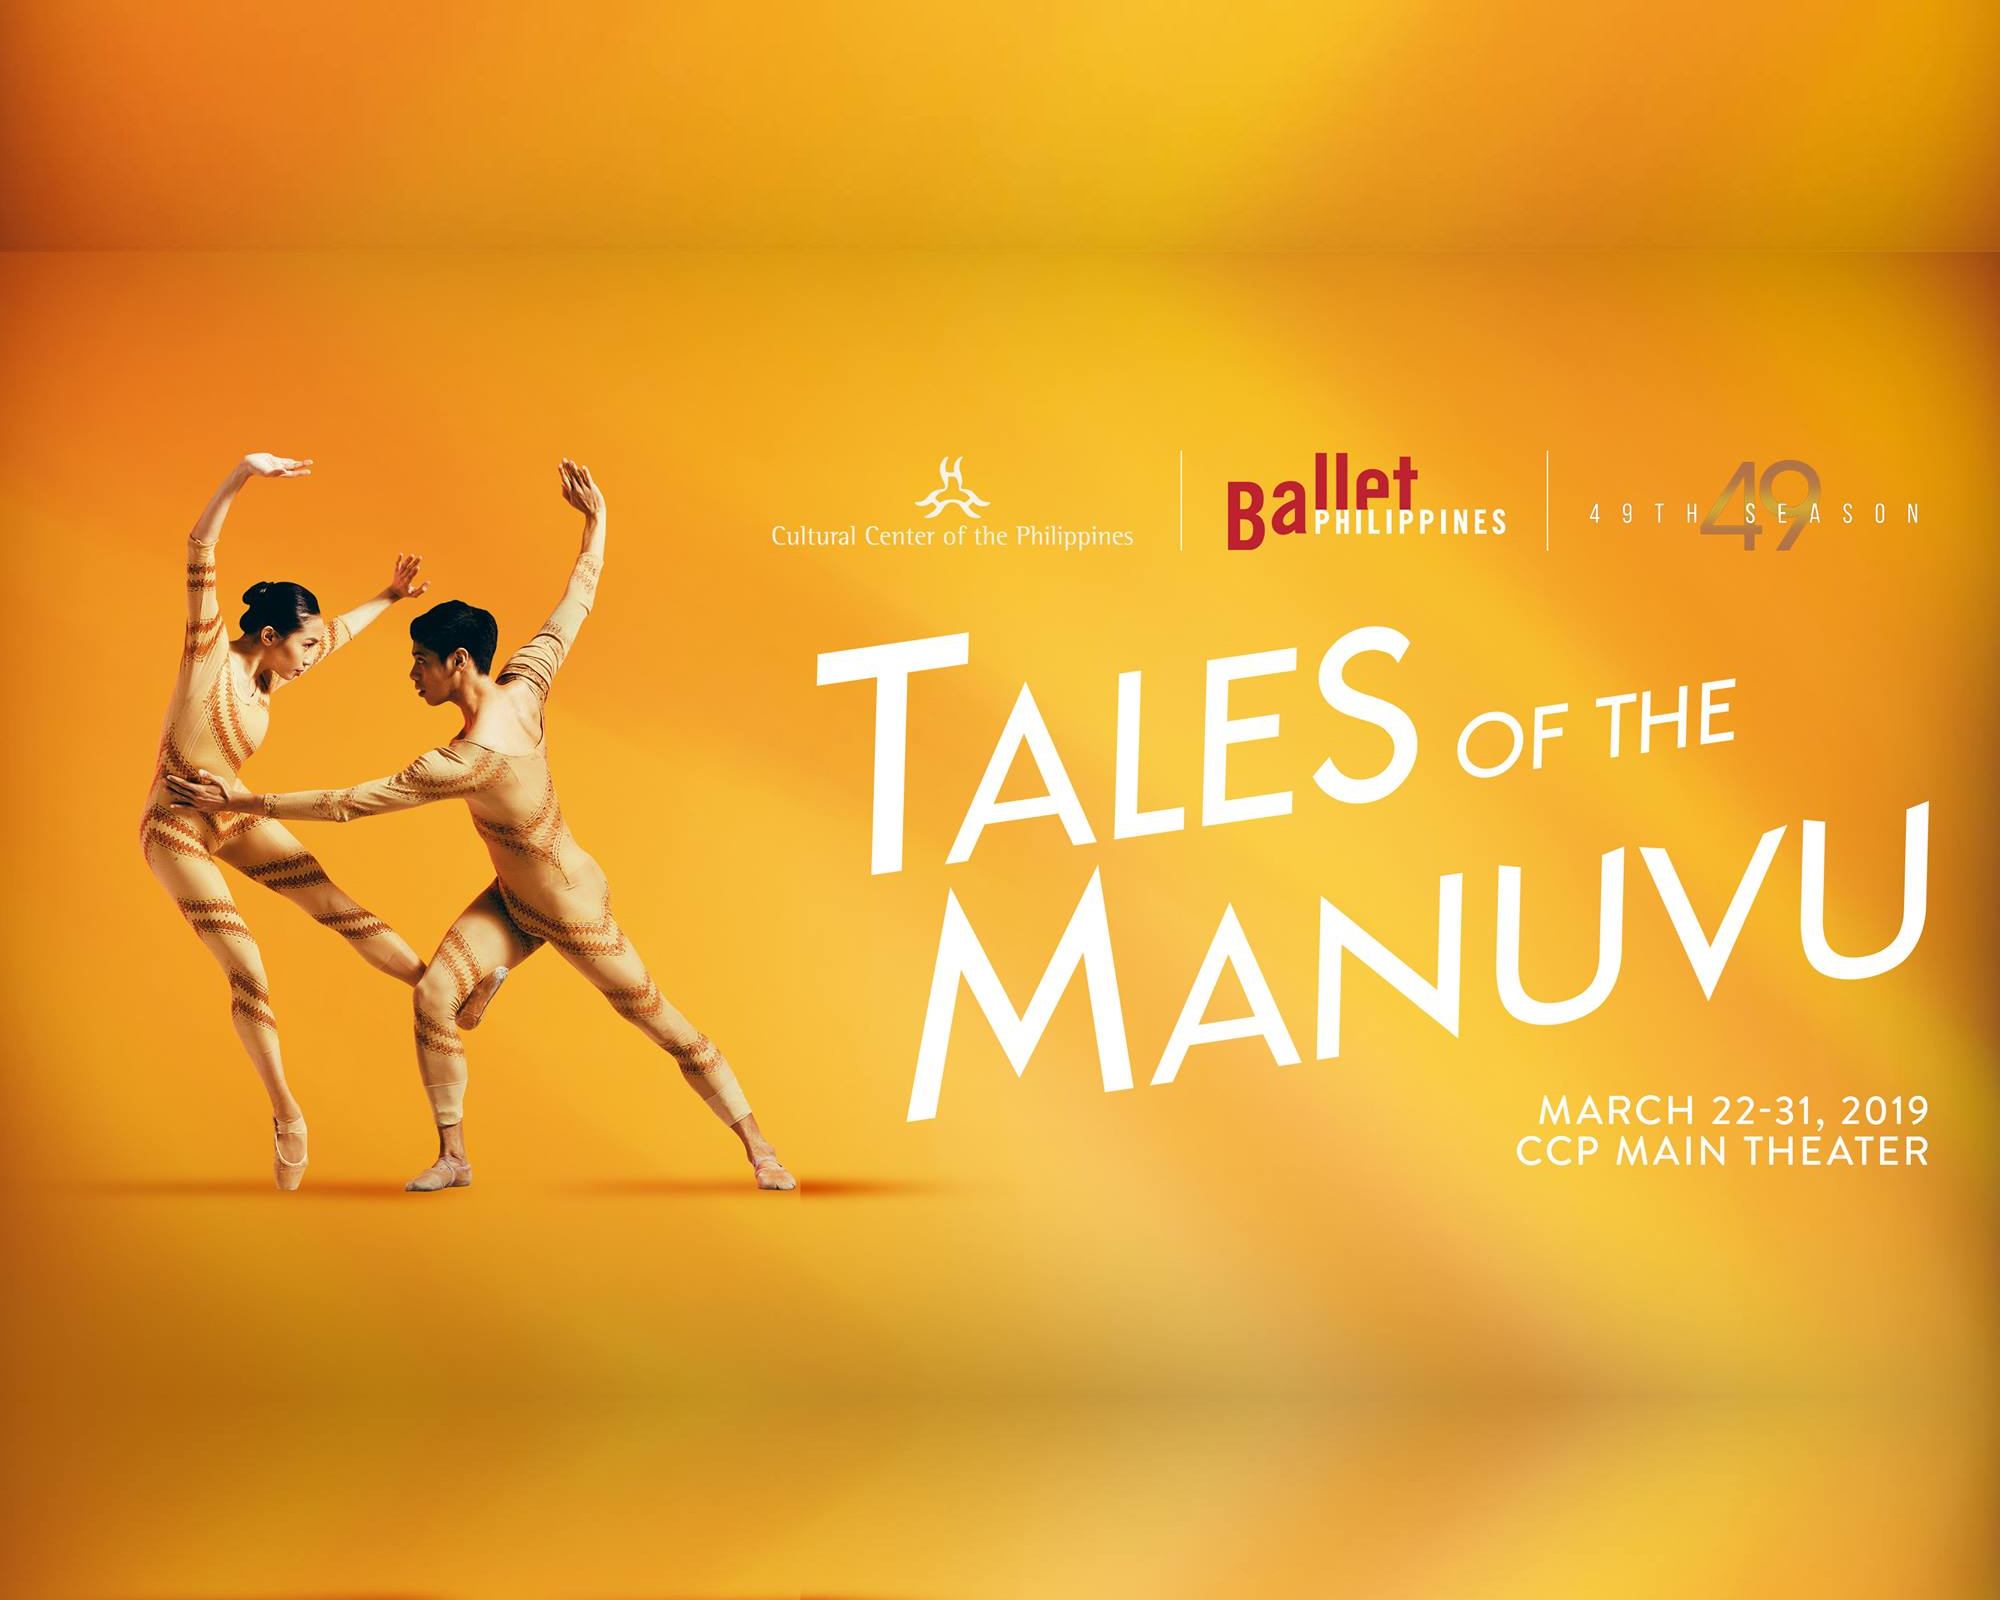 Margie Moran-Floirendo on Tales of the Manuvu: A Modern Take on a Classic